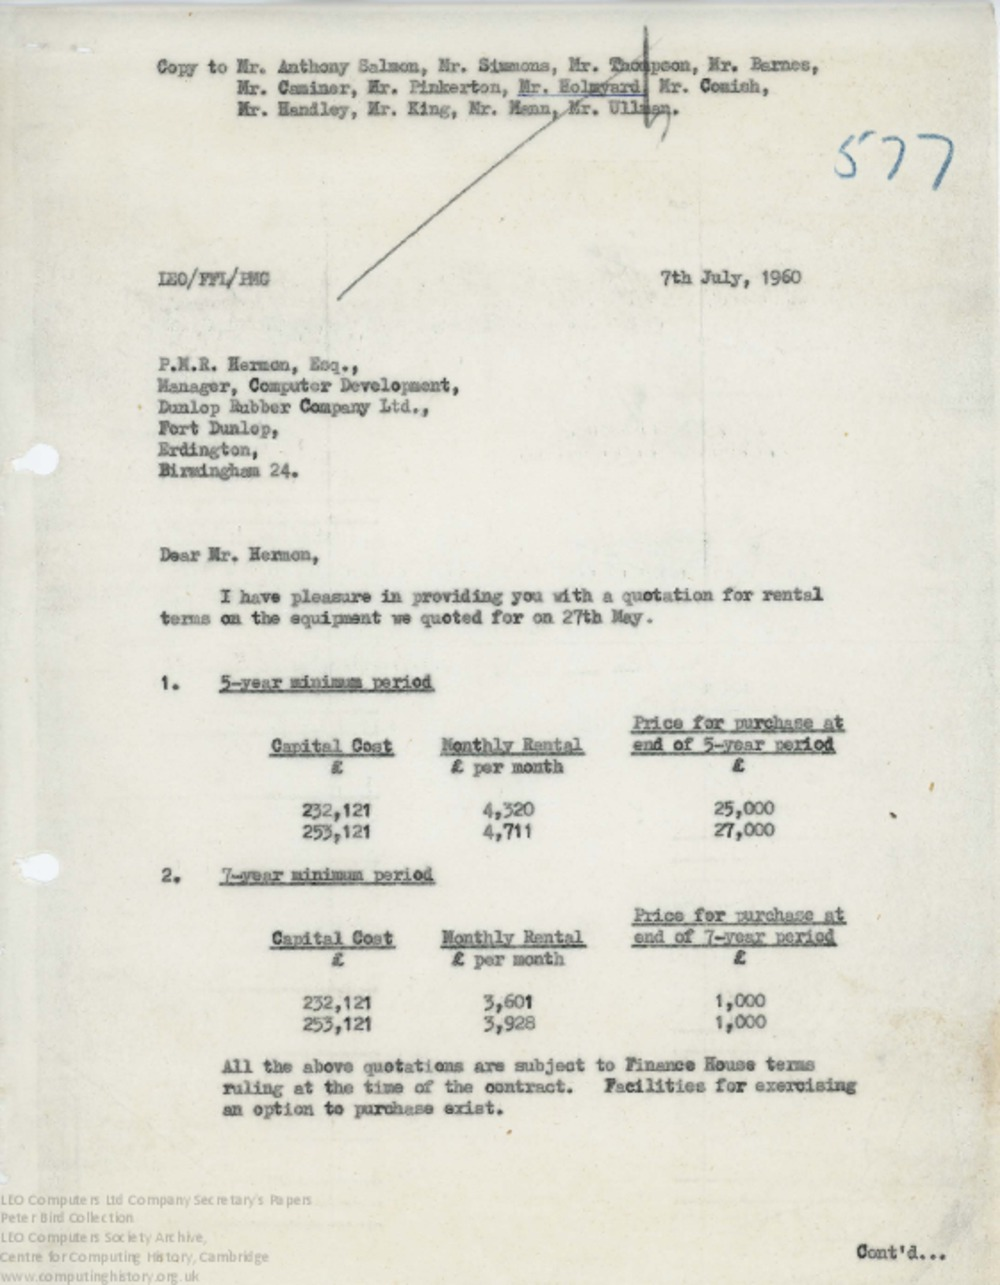 Article: 62846 Rental Quotation for Dunlop, 7th Jul 1960